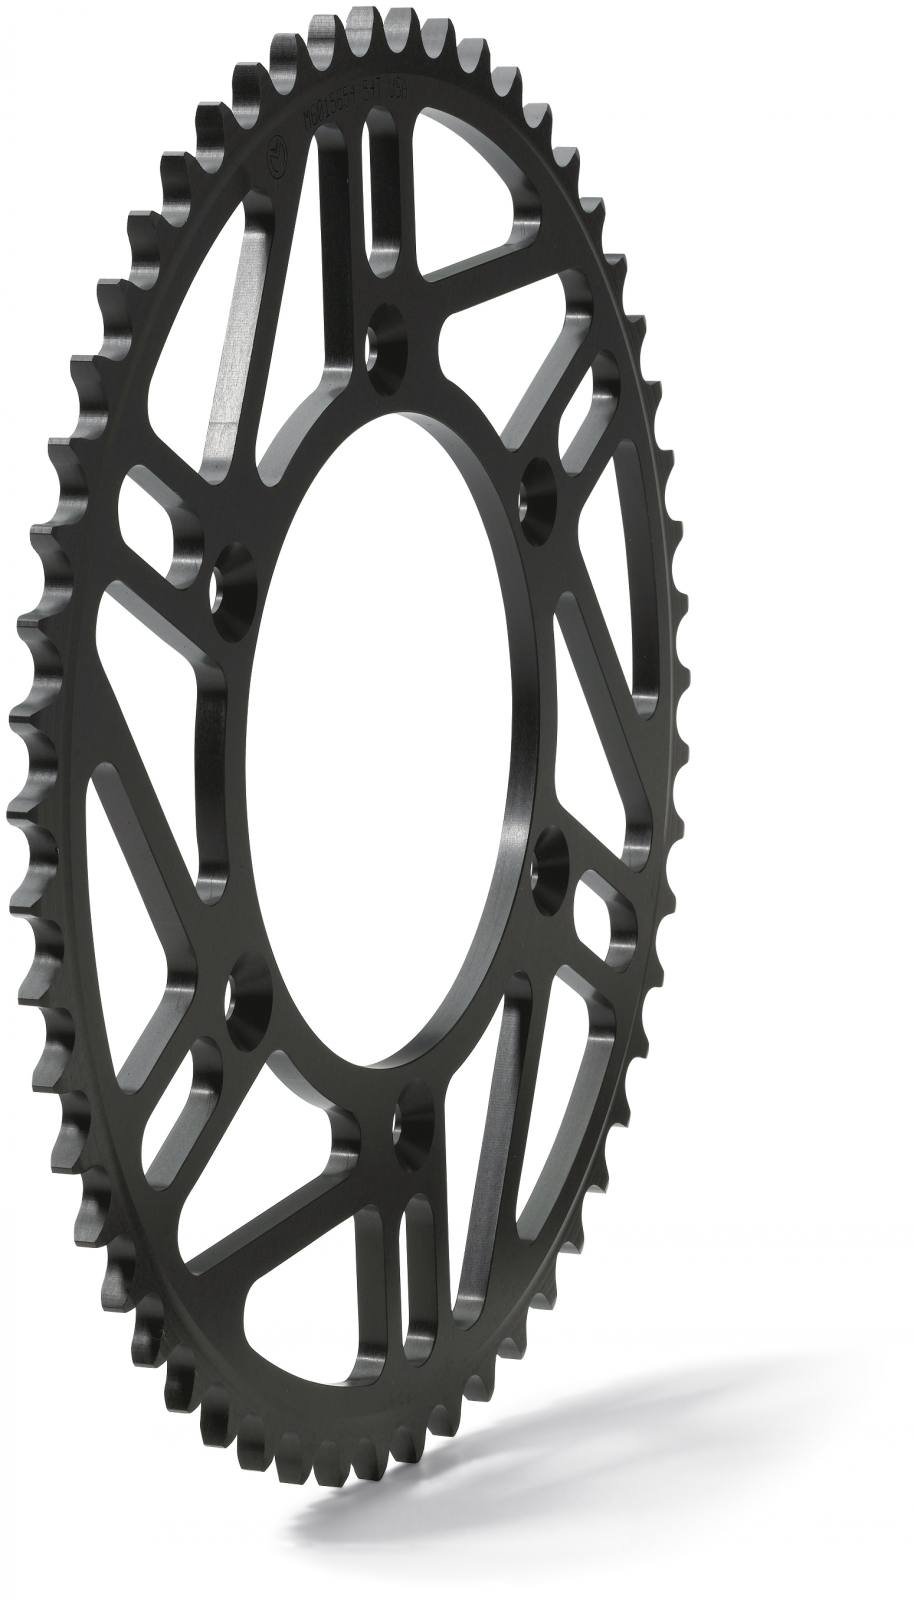 Aluminum Rear Sprocket For Sale In Westland Mi Moto Man Racing Crank Driveline 46t 734 454 7575